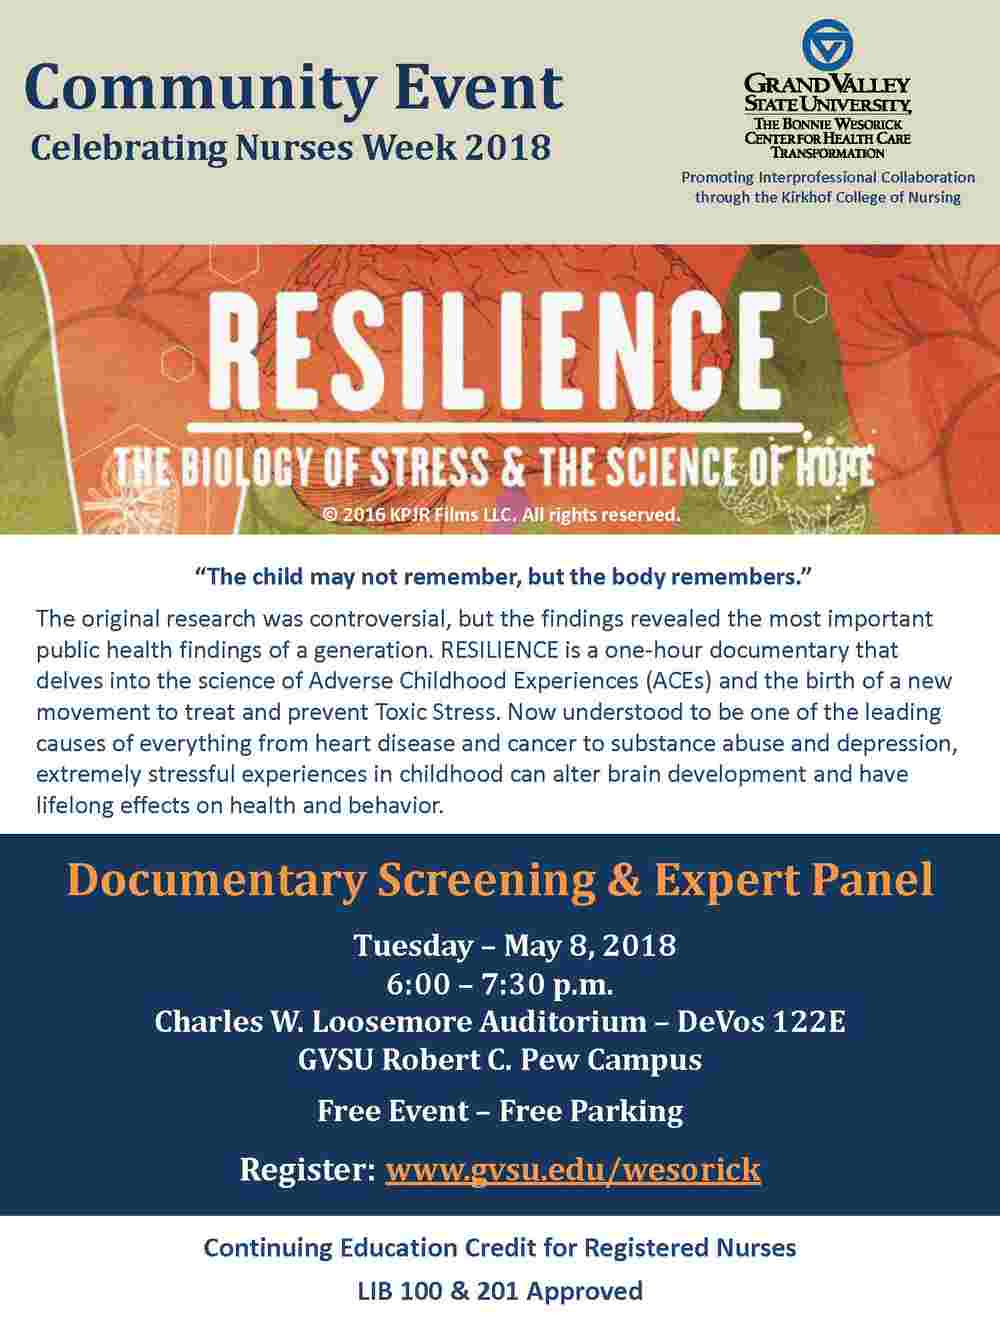 RESILIENCE - The Biology of Stress & the Science of Hope